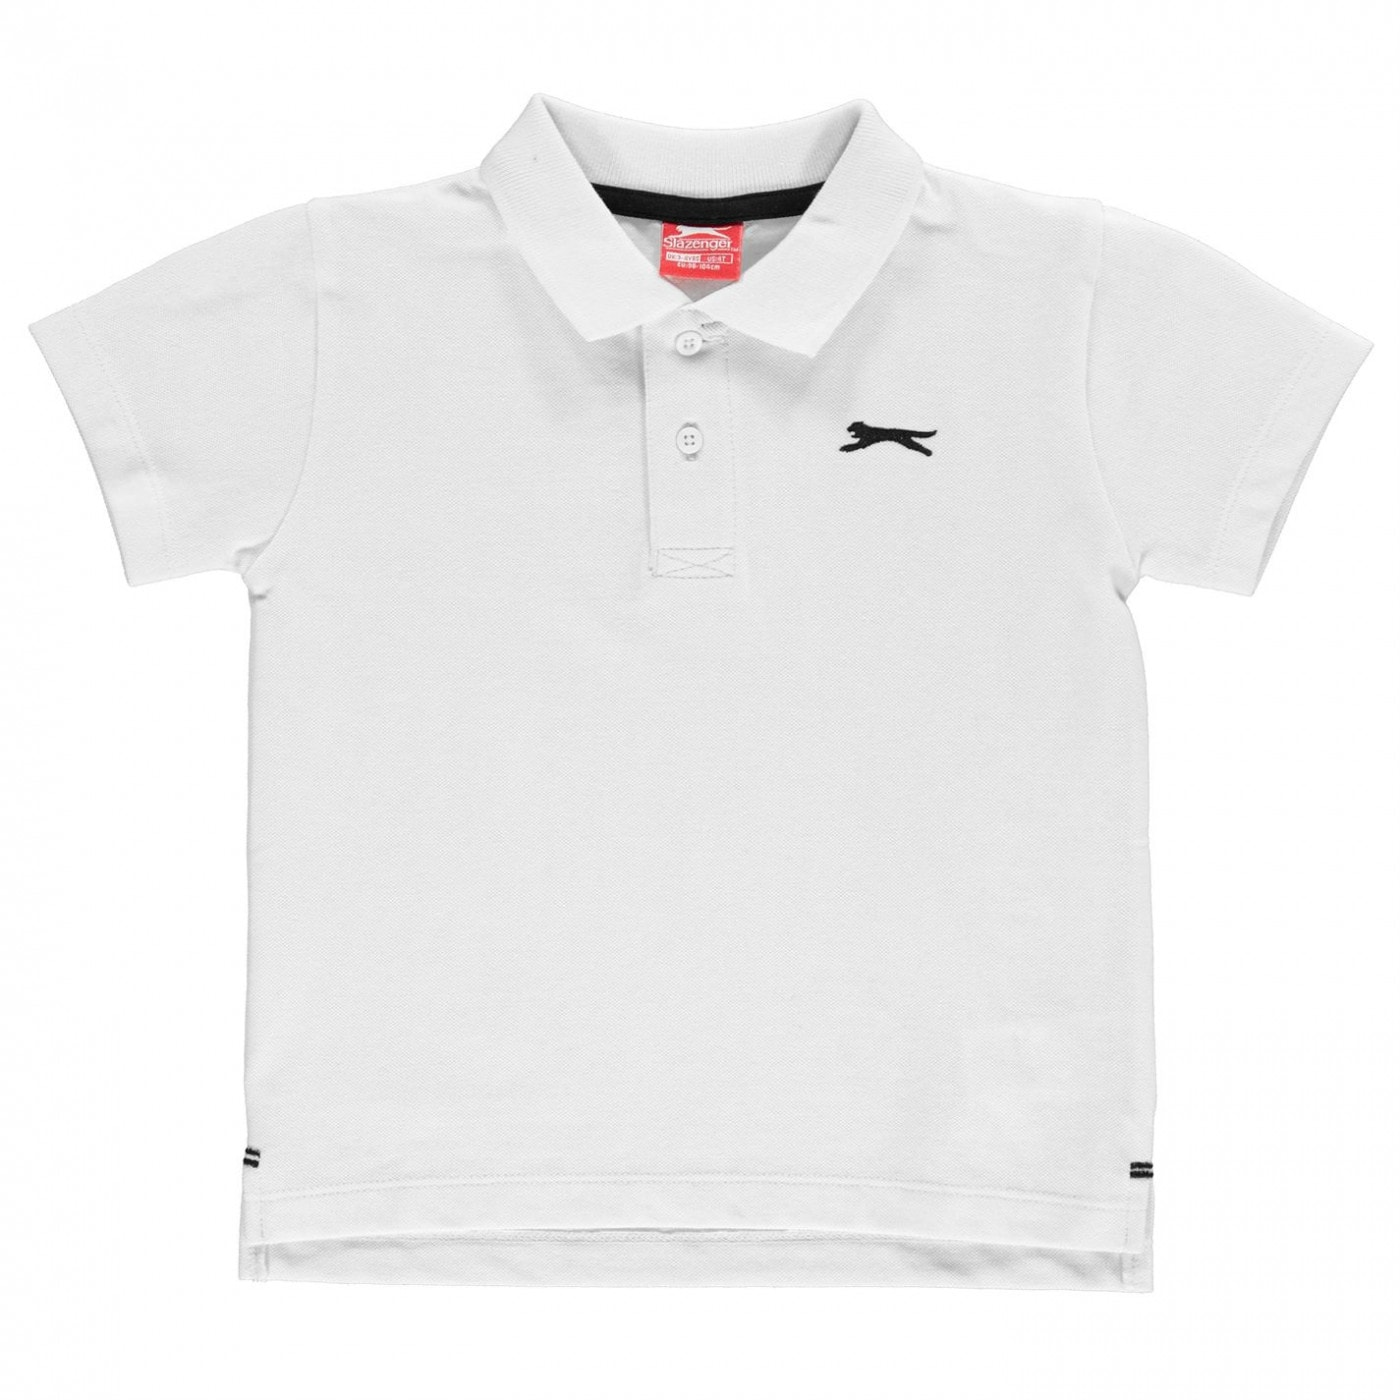 Slazenger Plain Polo Shirt Infant Boys